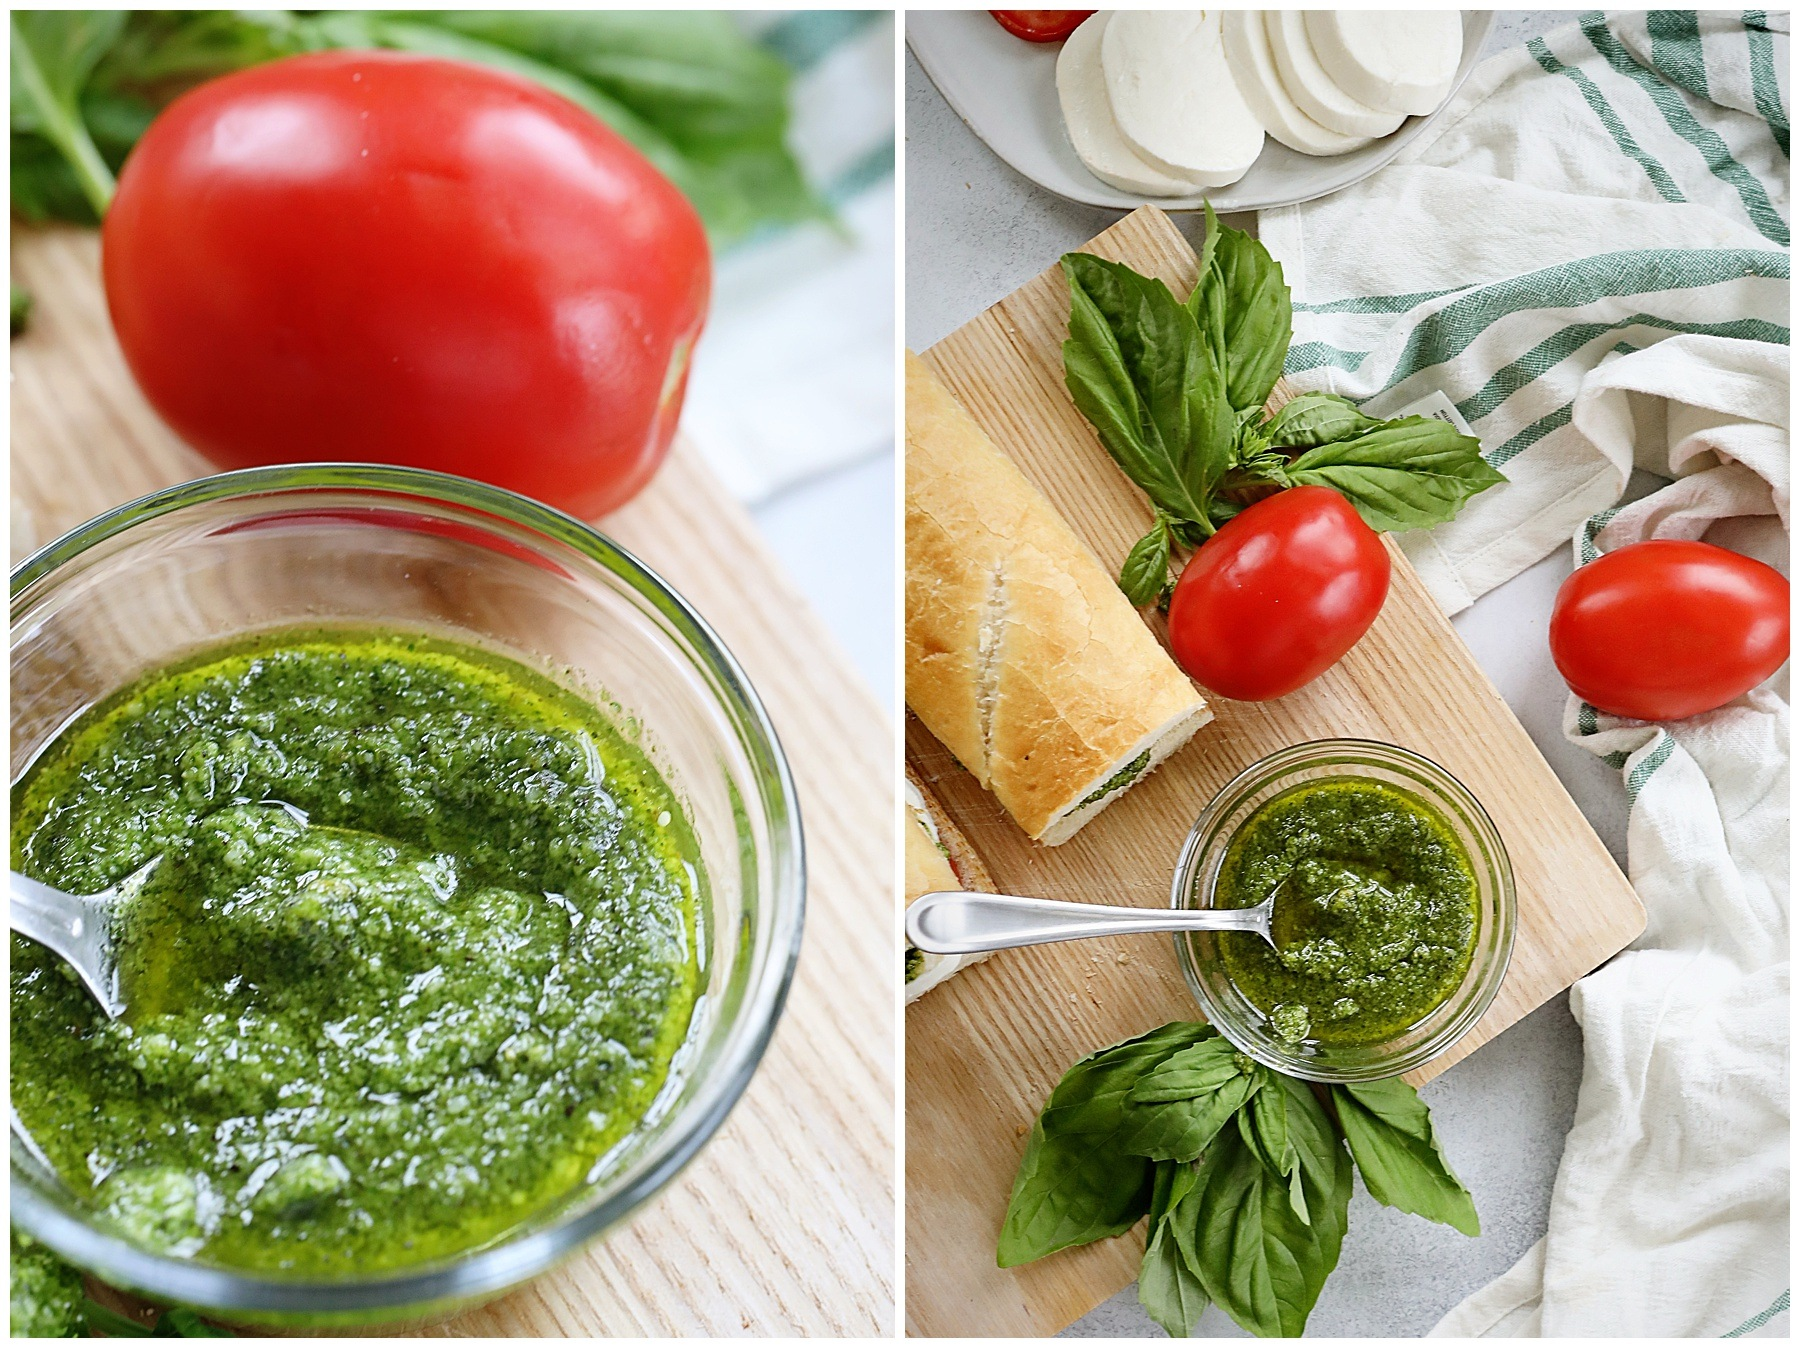 Simple and delicious Basil Pesto recipe